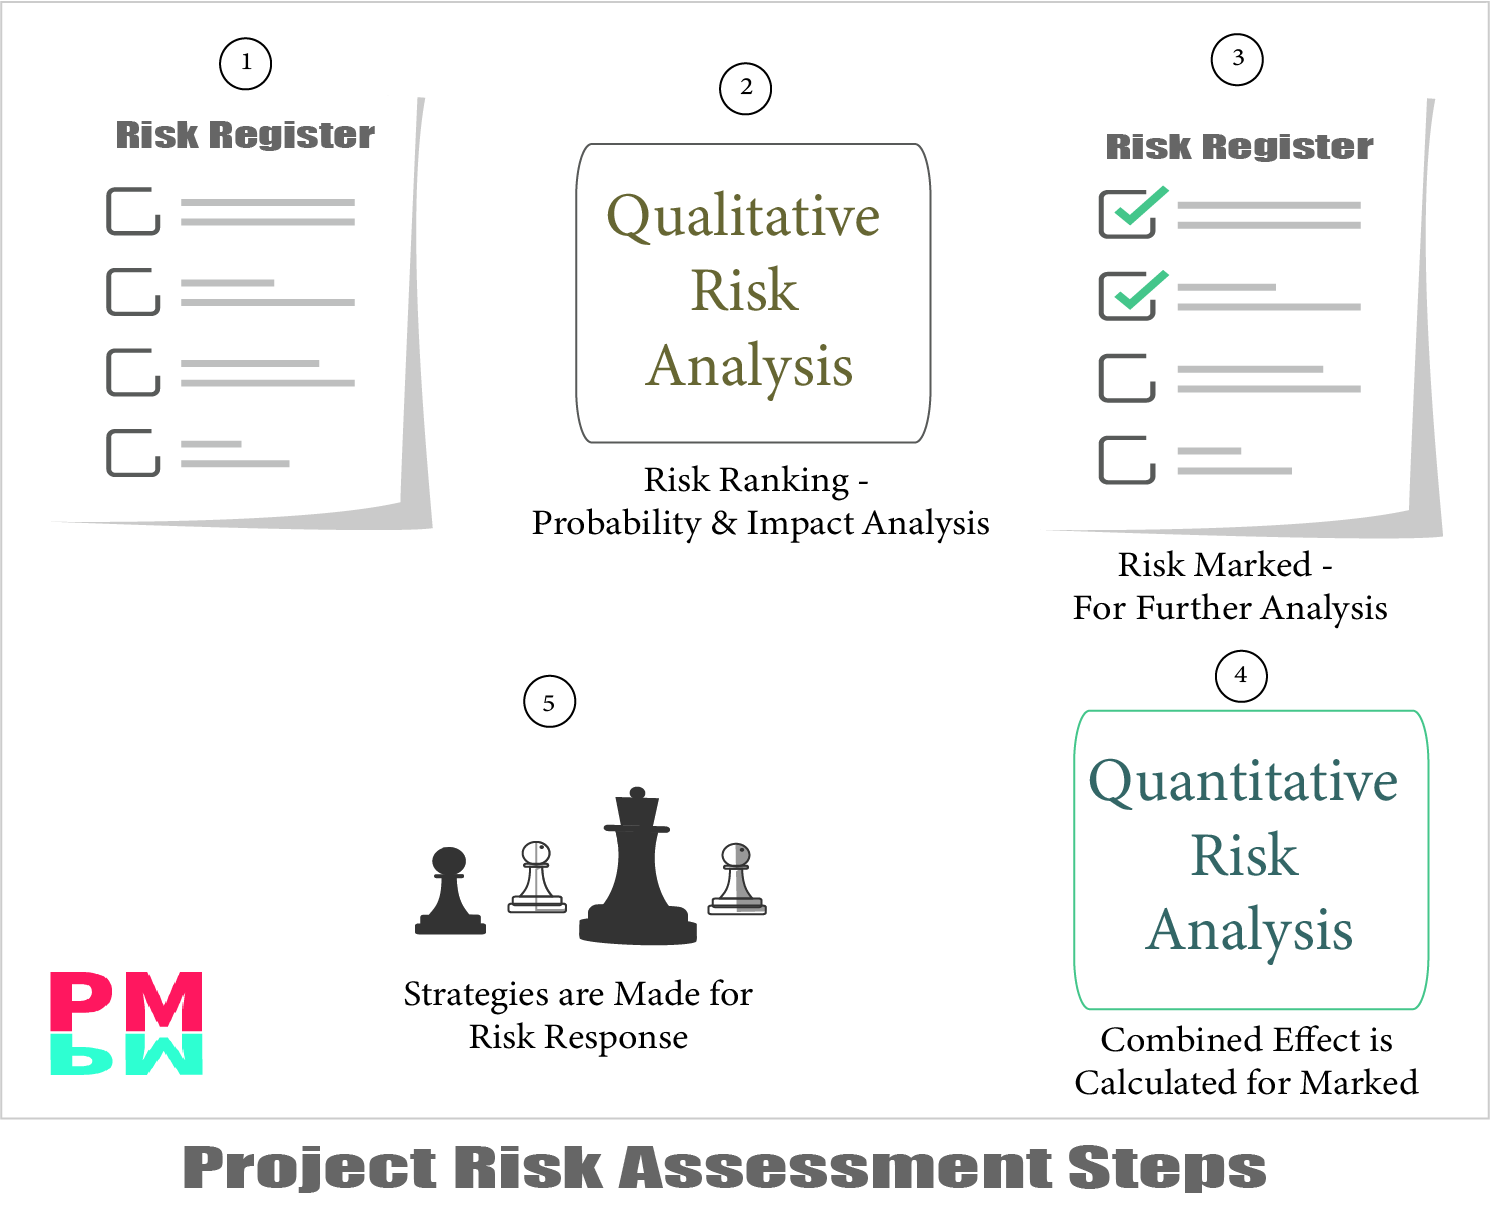 Project Risk Assessment Steps Explained in this infographic explanation